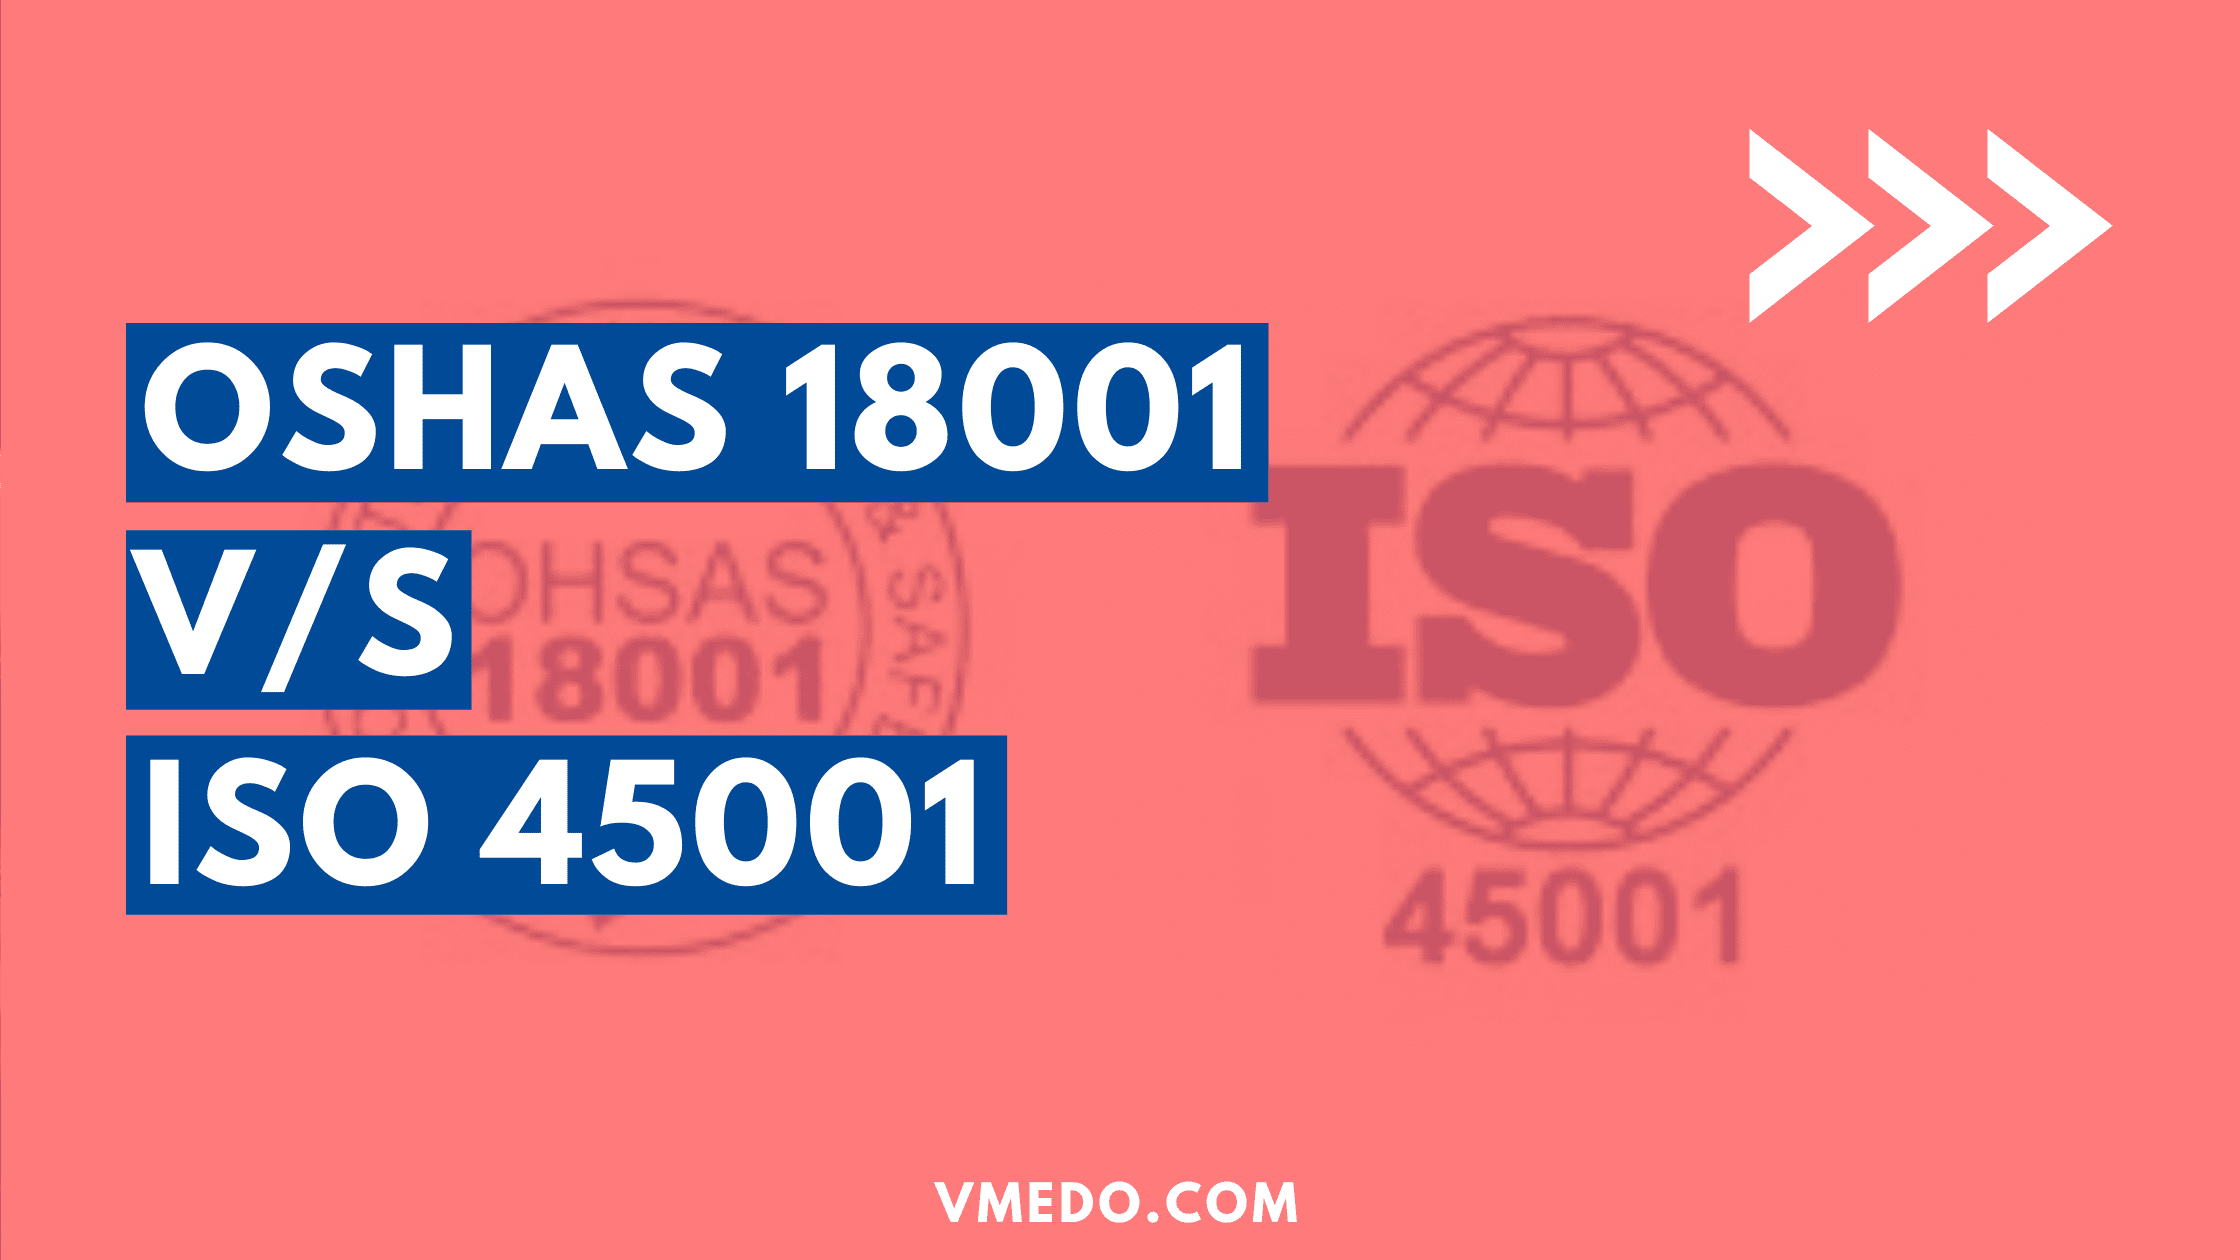 iso 45001 and oshas 18001